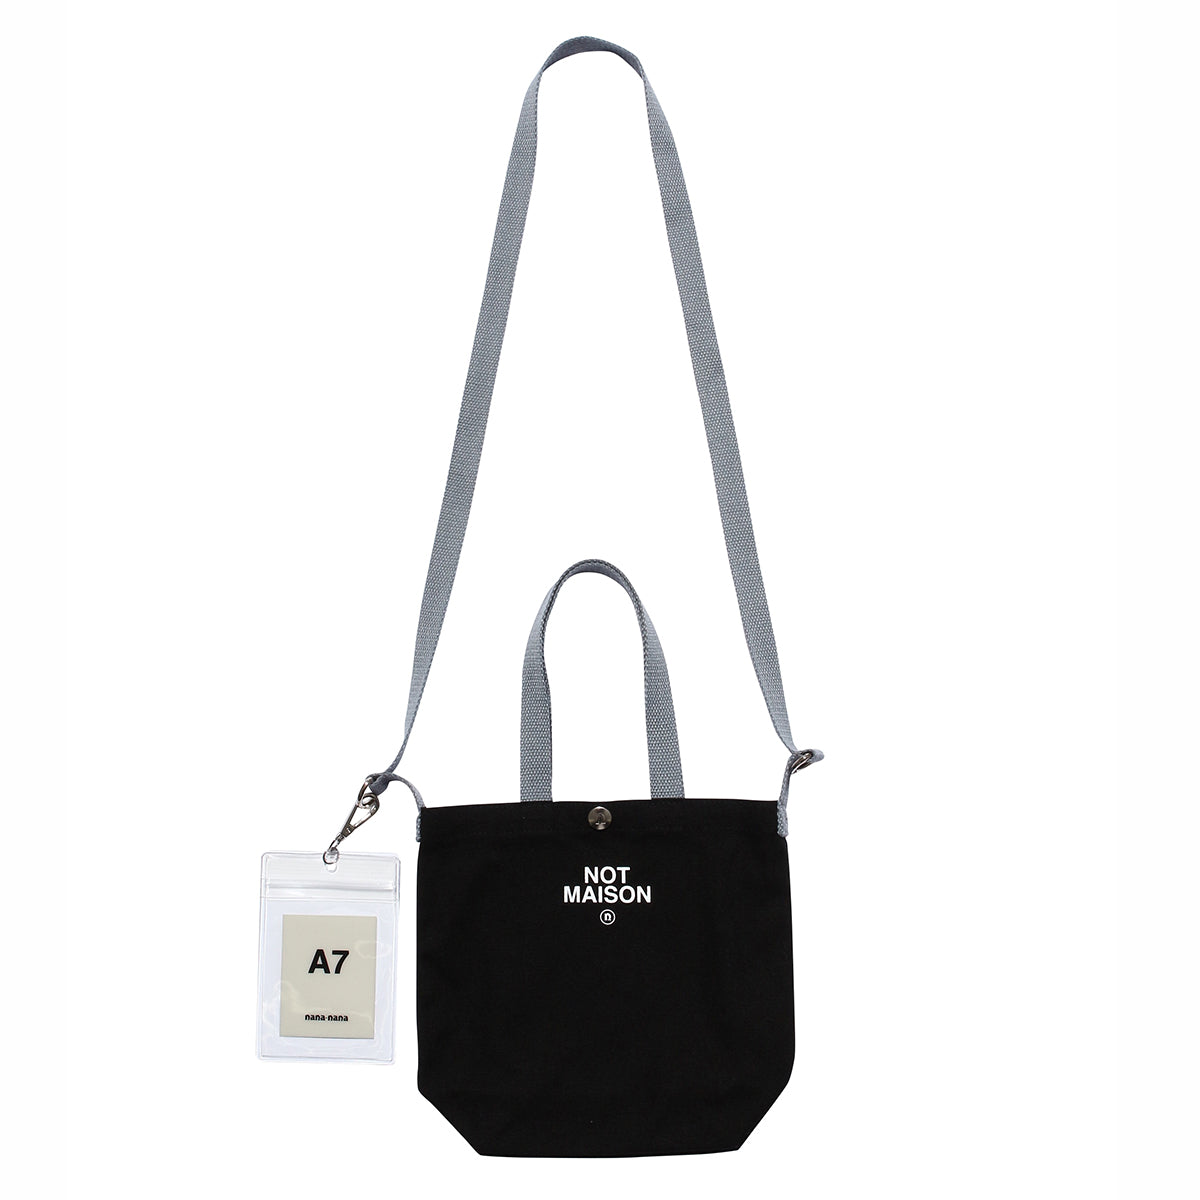 NOT MAISON / S (TOTE BAG)